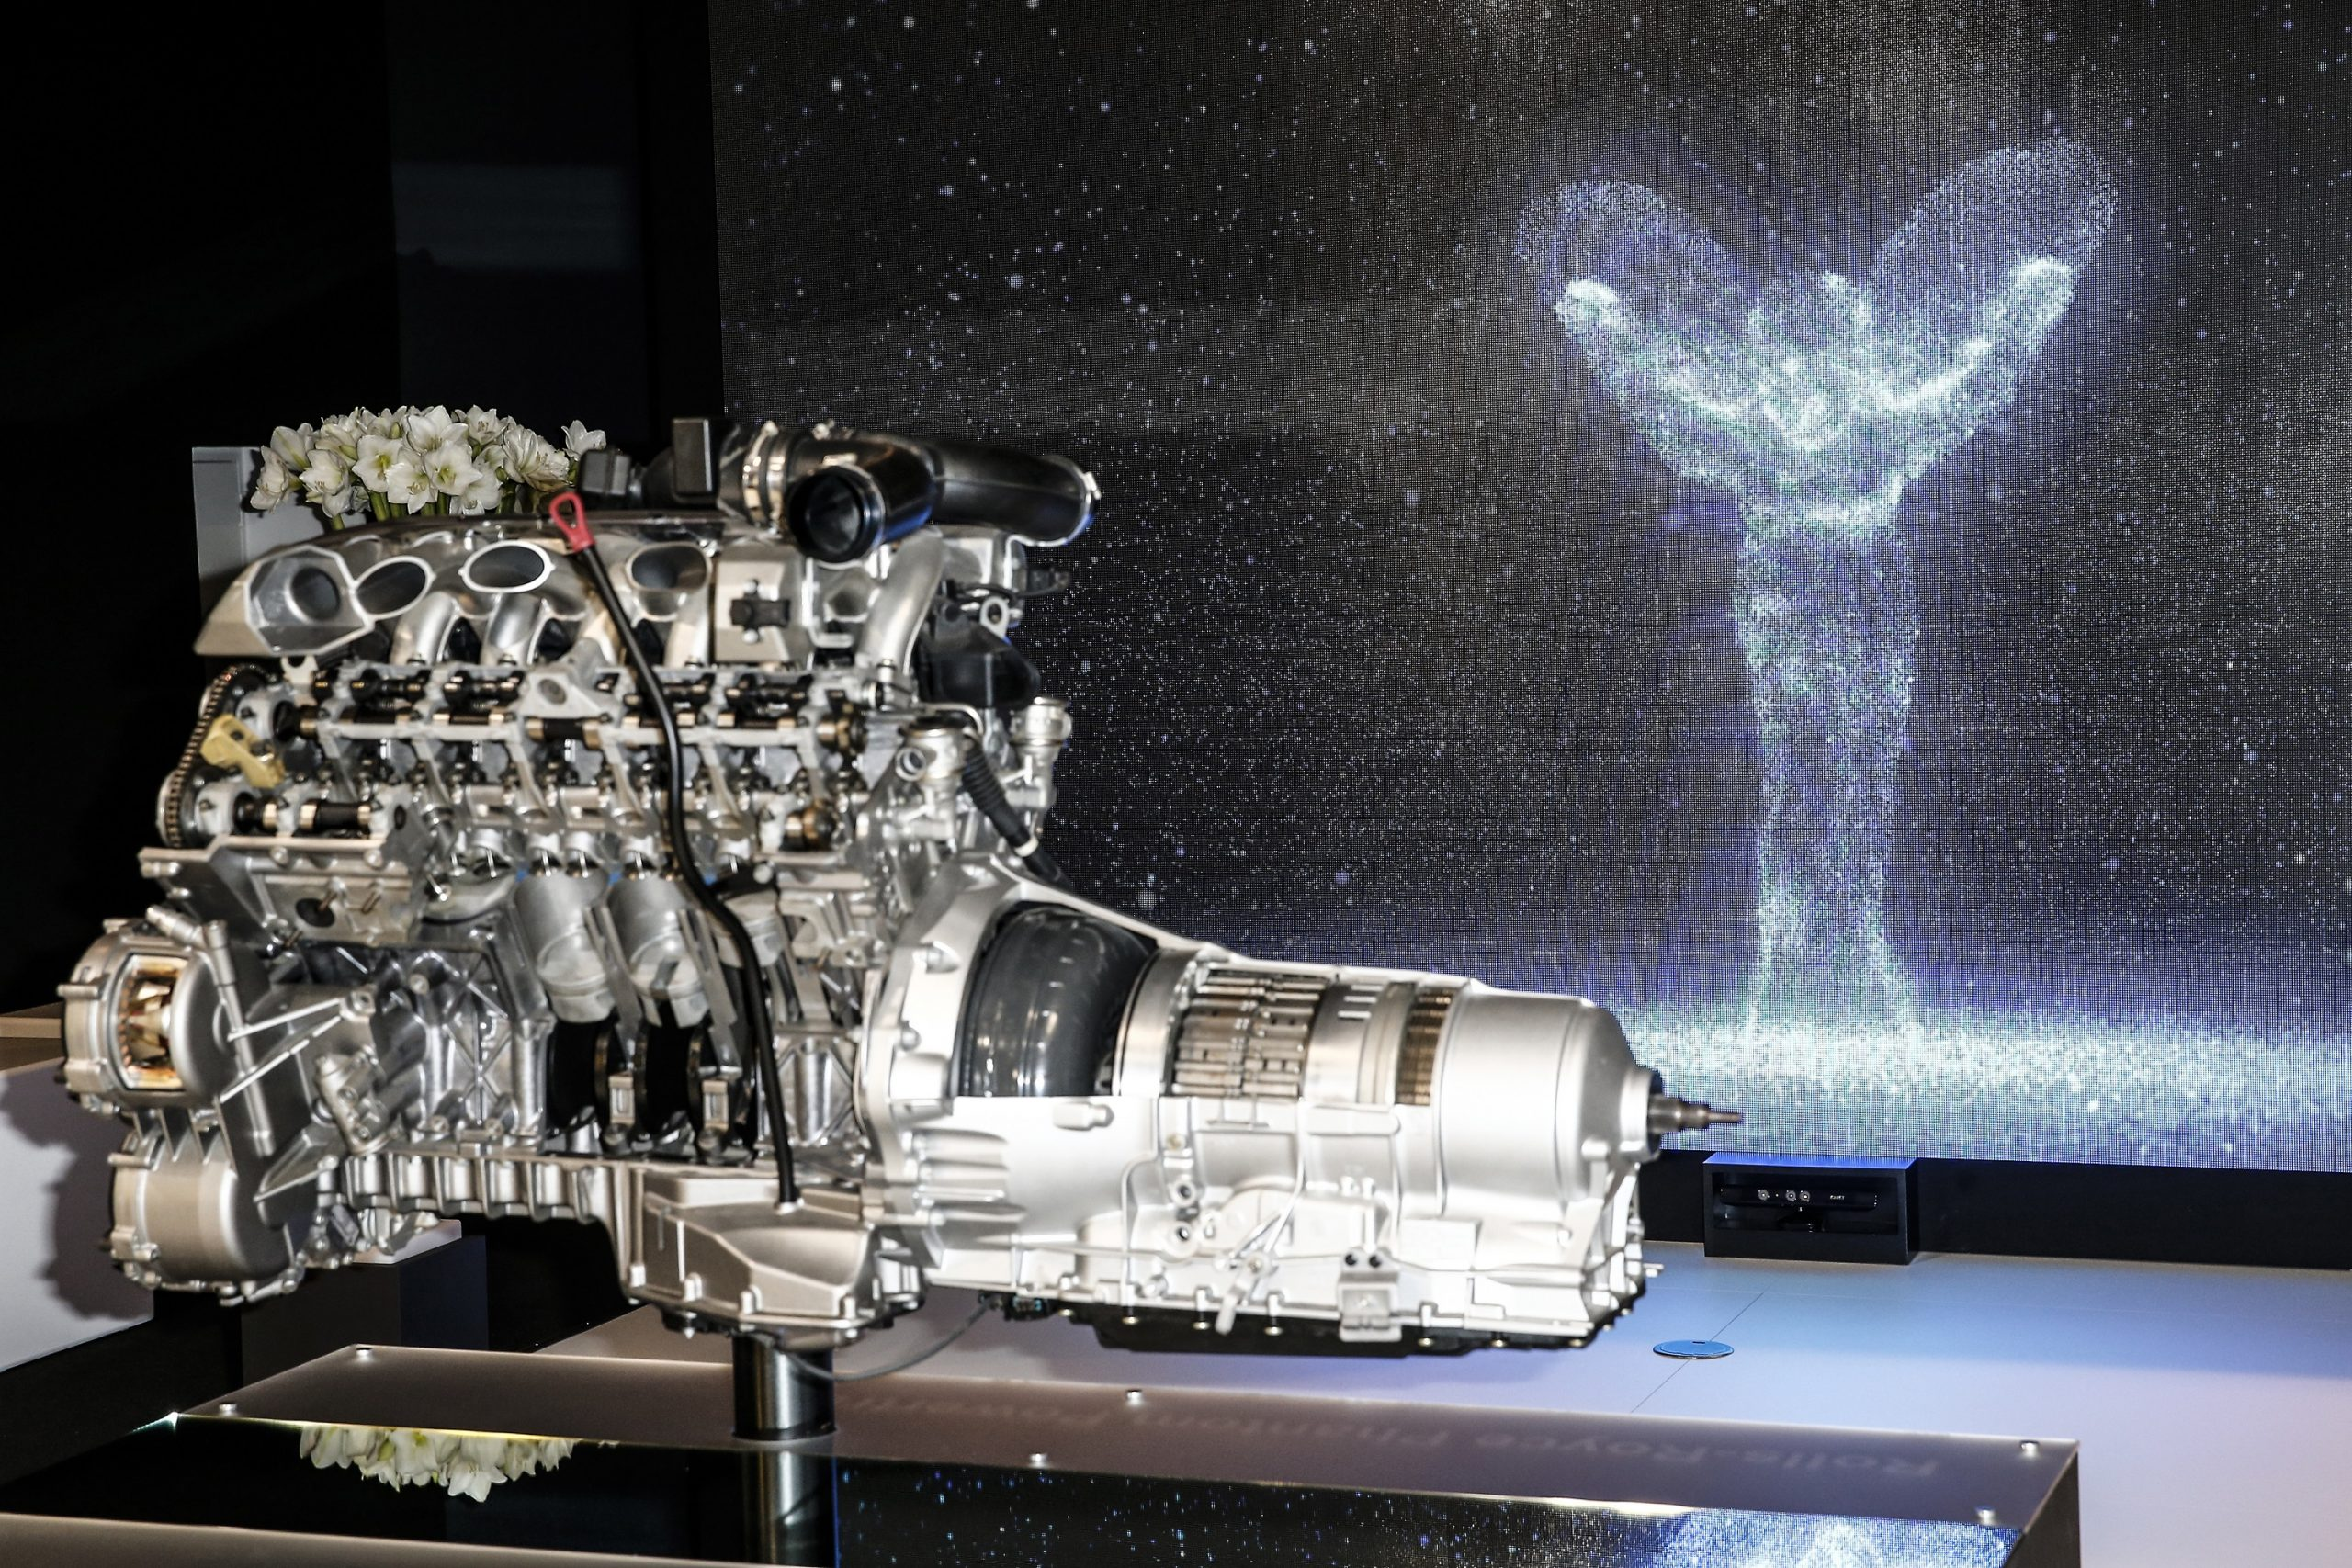 A V12 engine out of one of Rolls Royce's luxury cars on a stand at an auto show